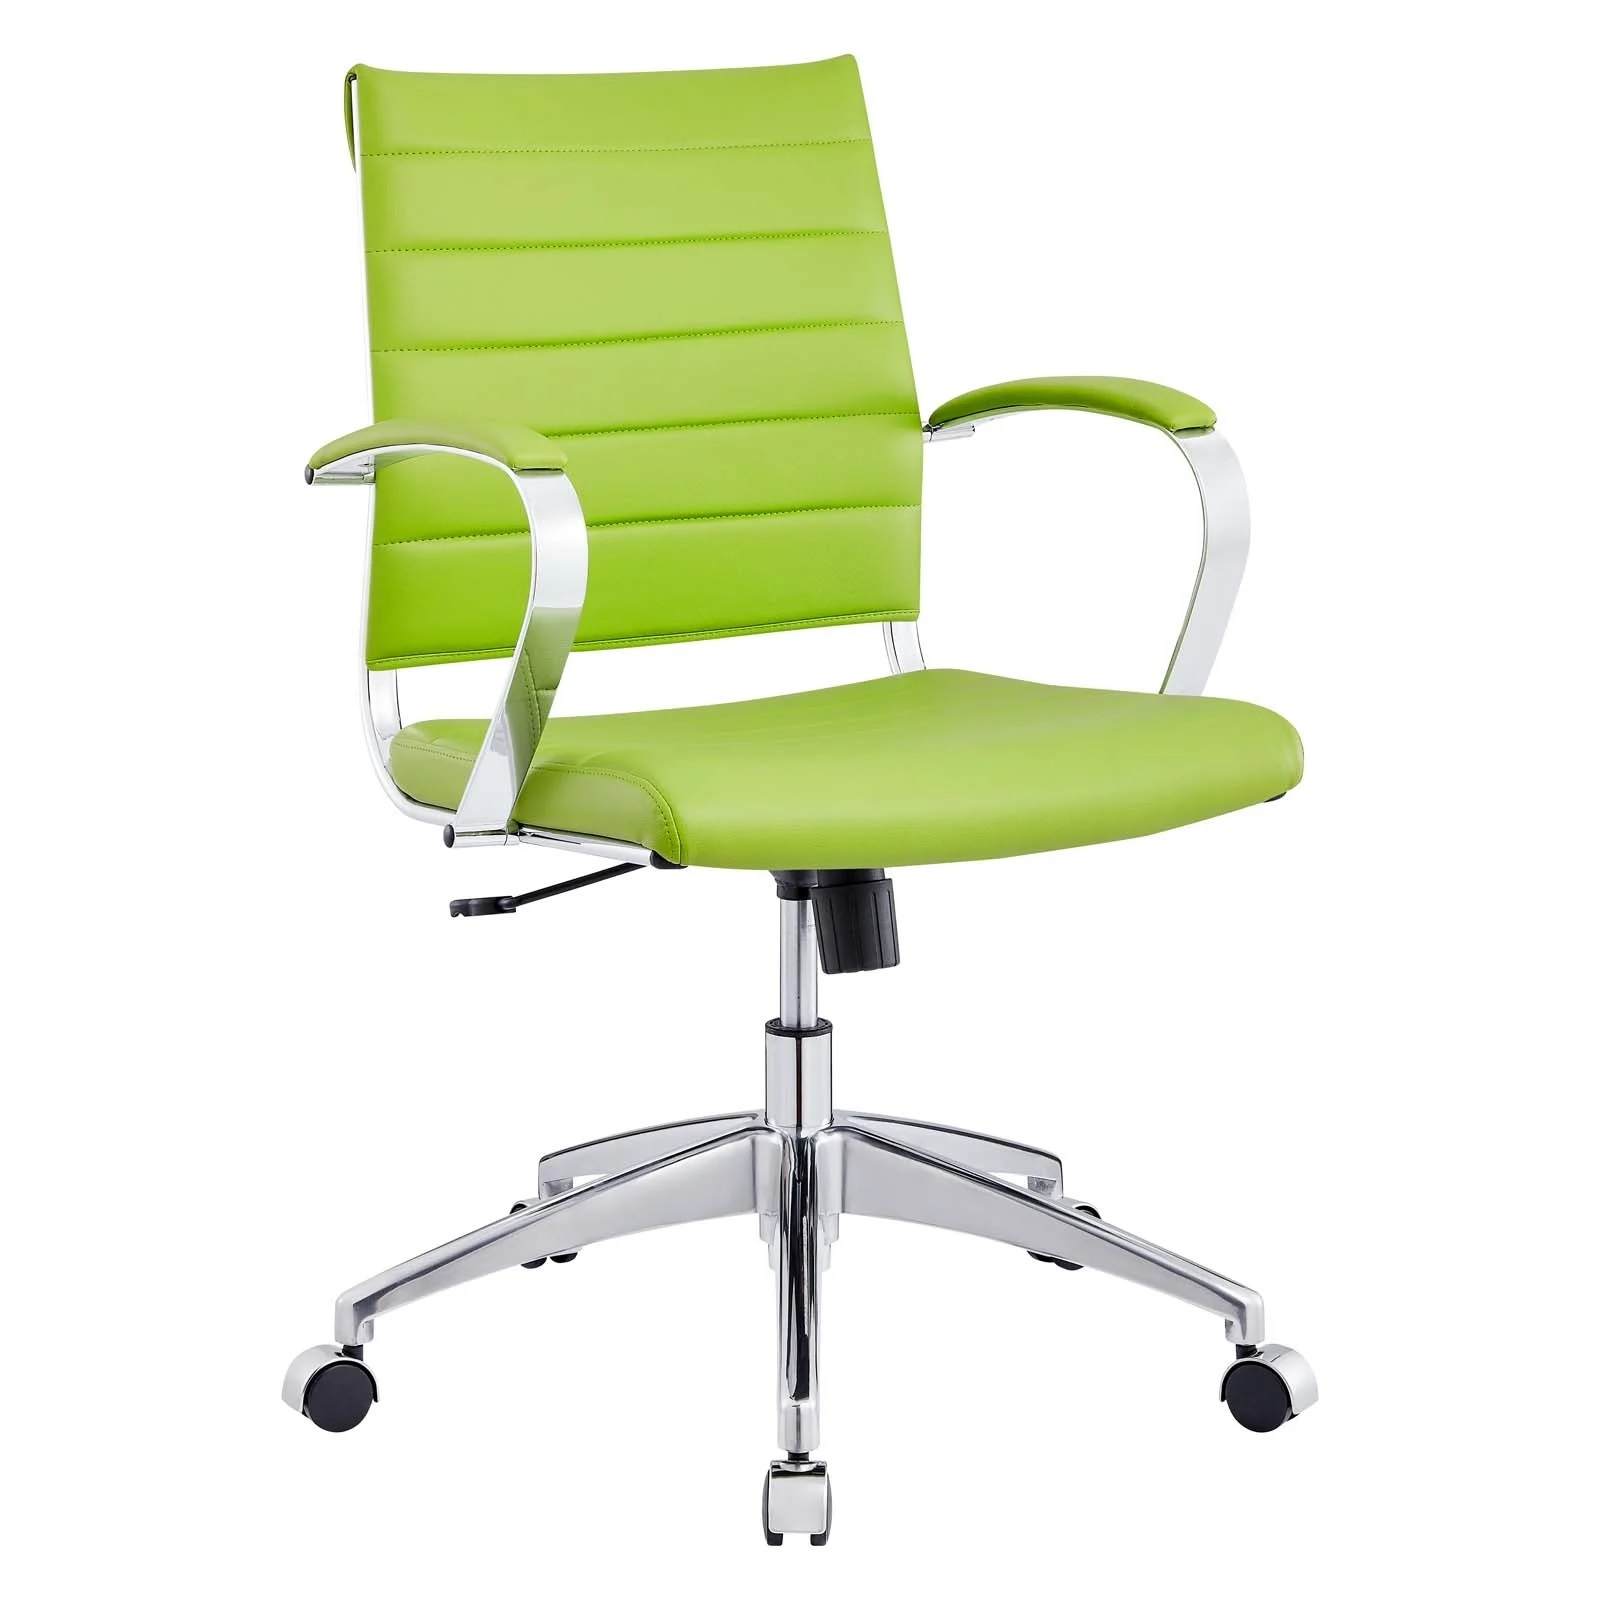 Back Office Chair in Bright Green